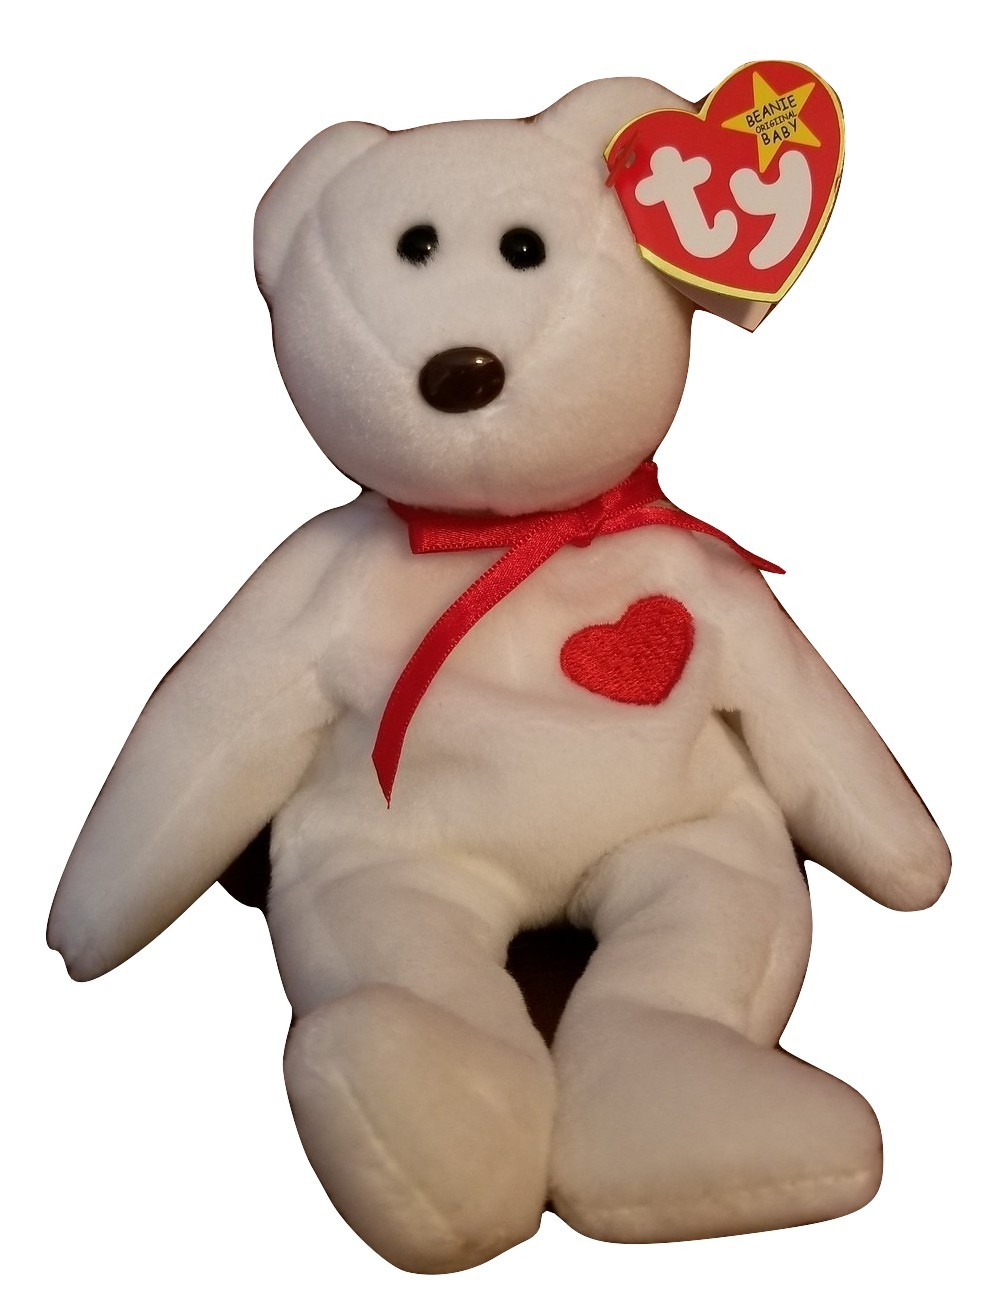 aef13a343a9 Img 5891079273 1525231005. Img 5891079273 1525231005. Rare Retired 1993  Valentino Ty Beanie Baby